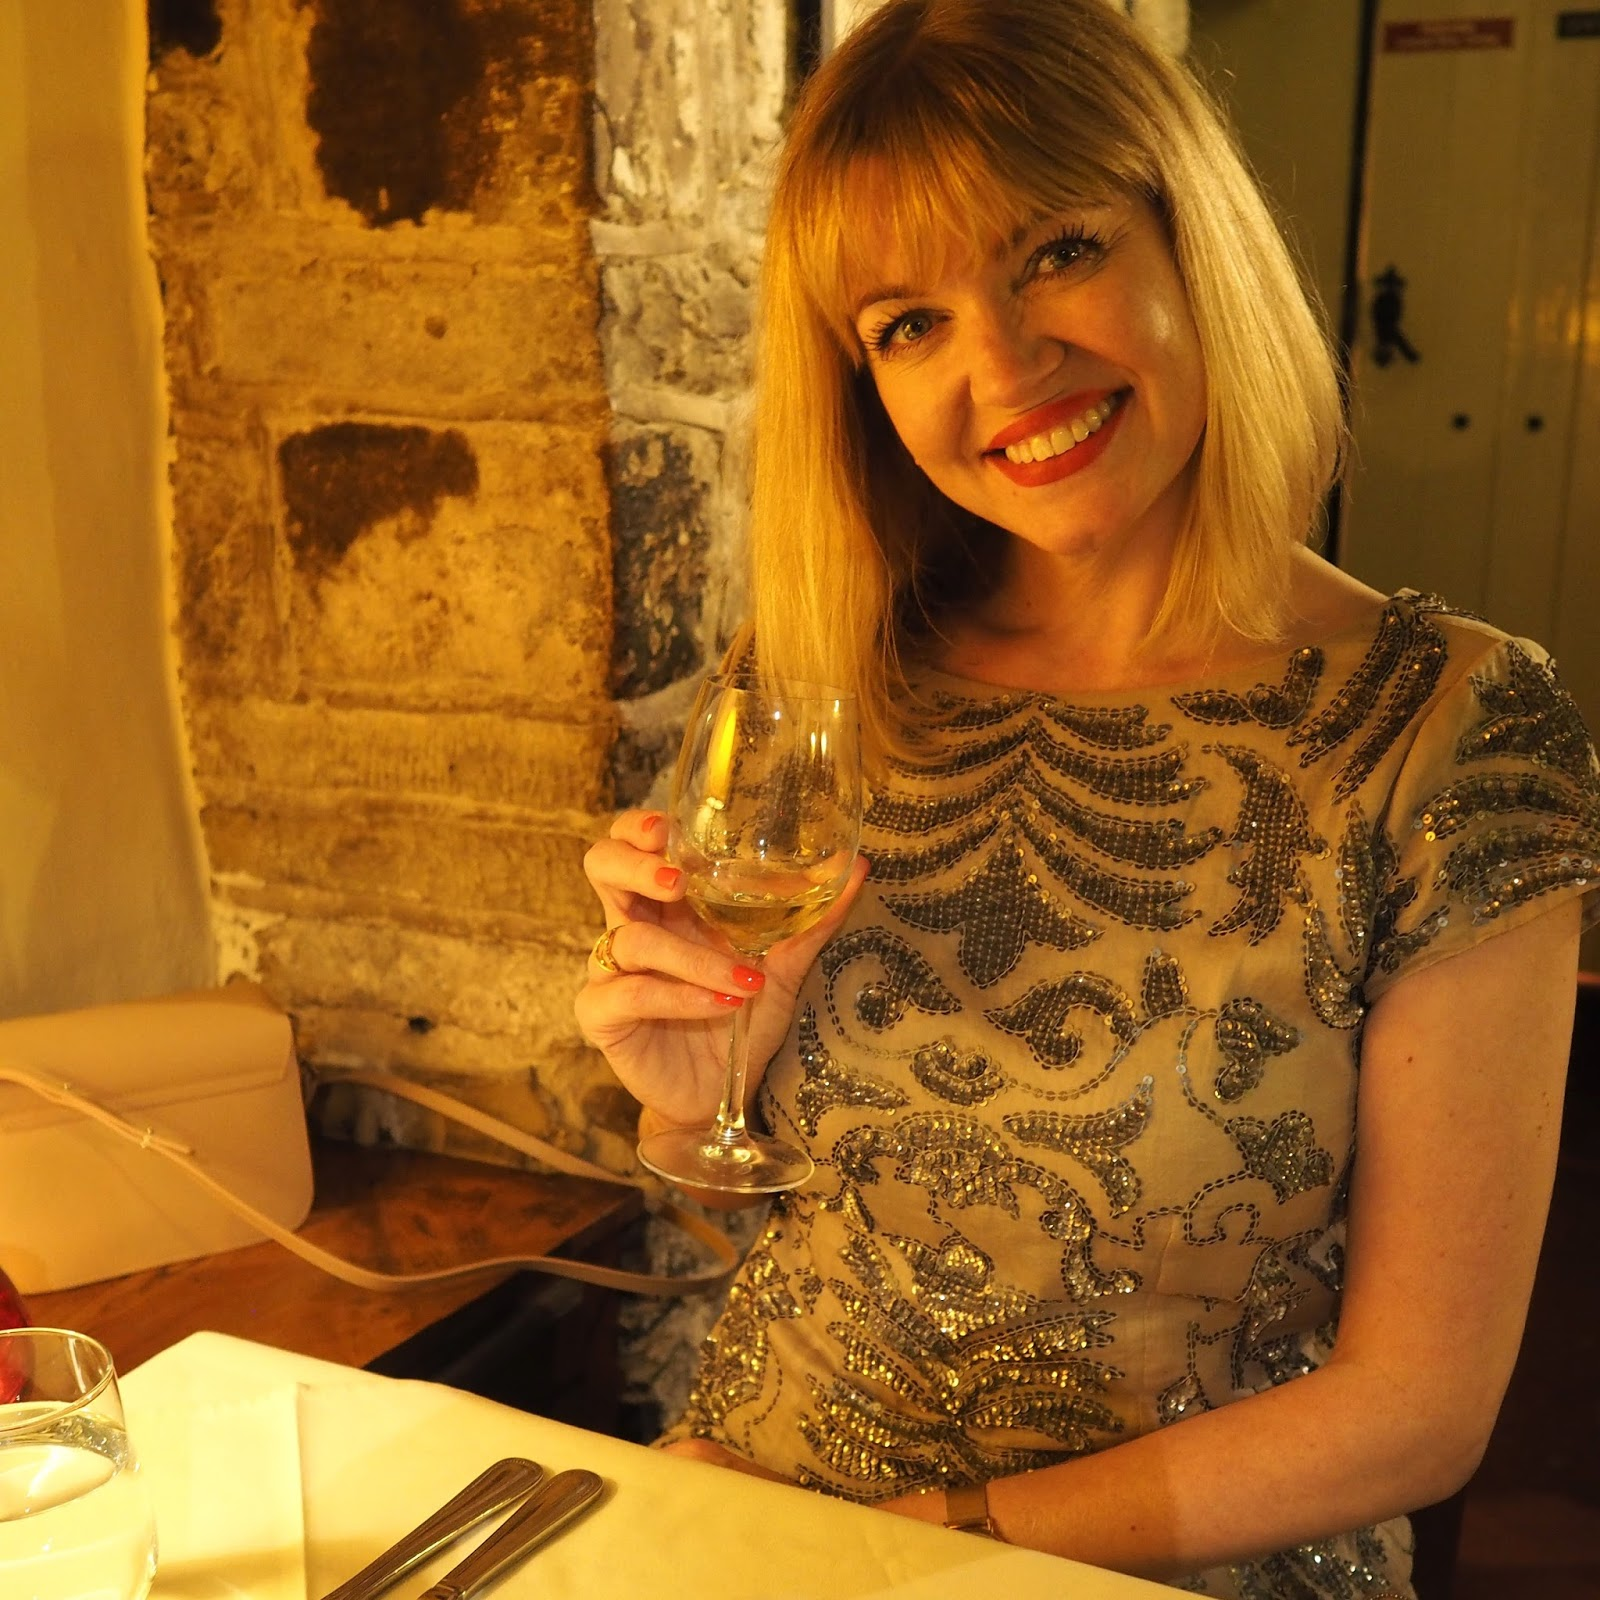 Sequinned dress for dinner at Le Caveau French restaurant in Skipton